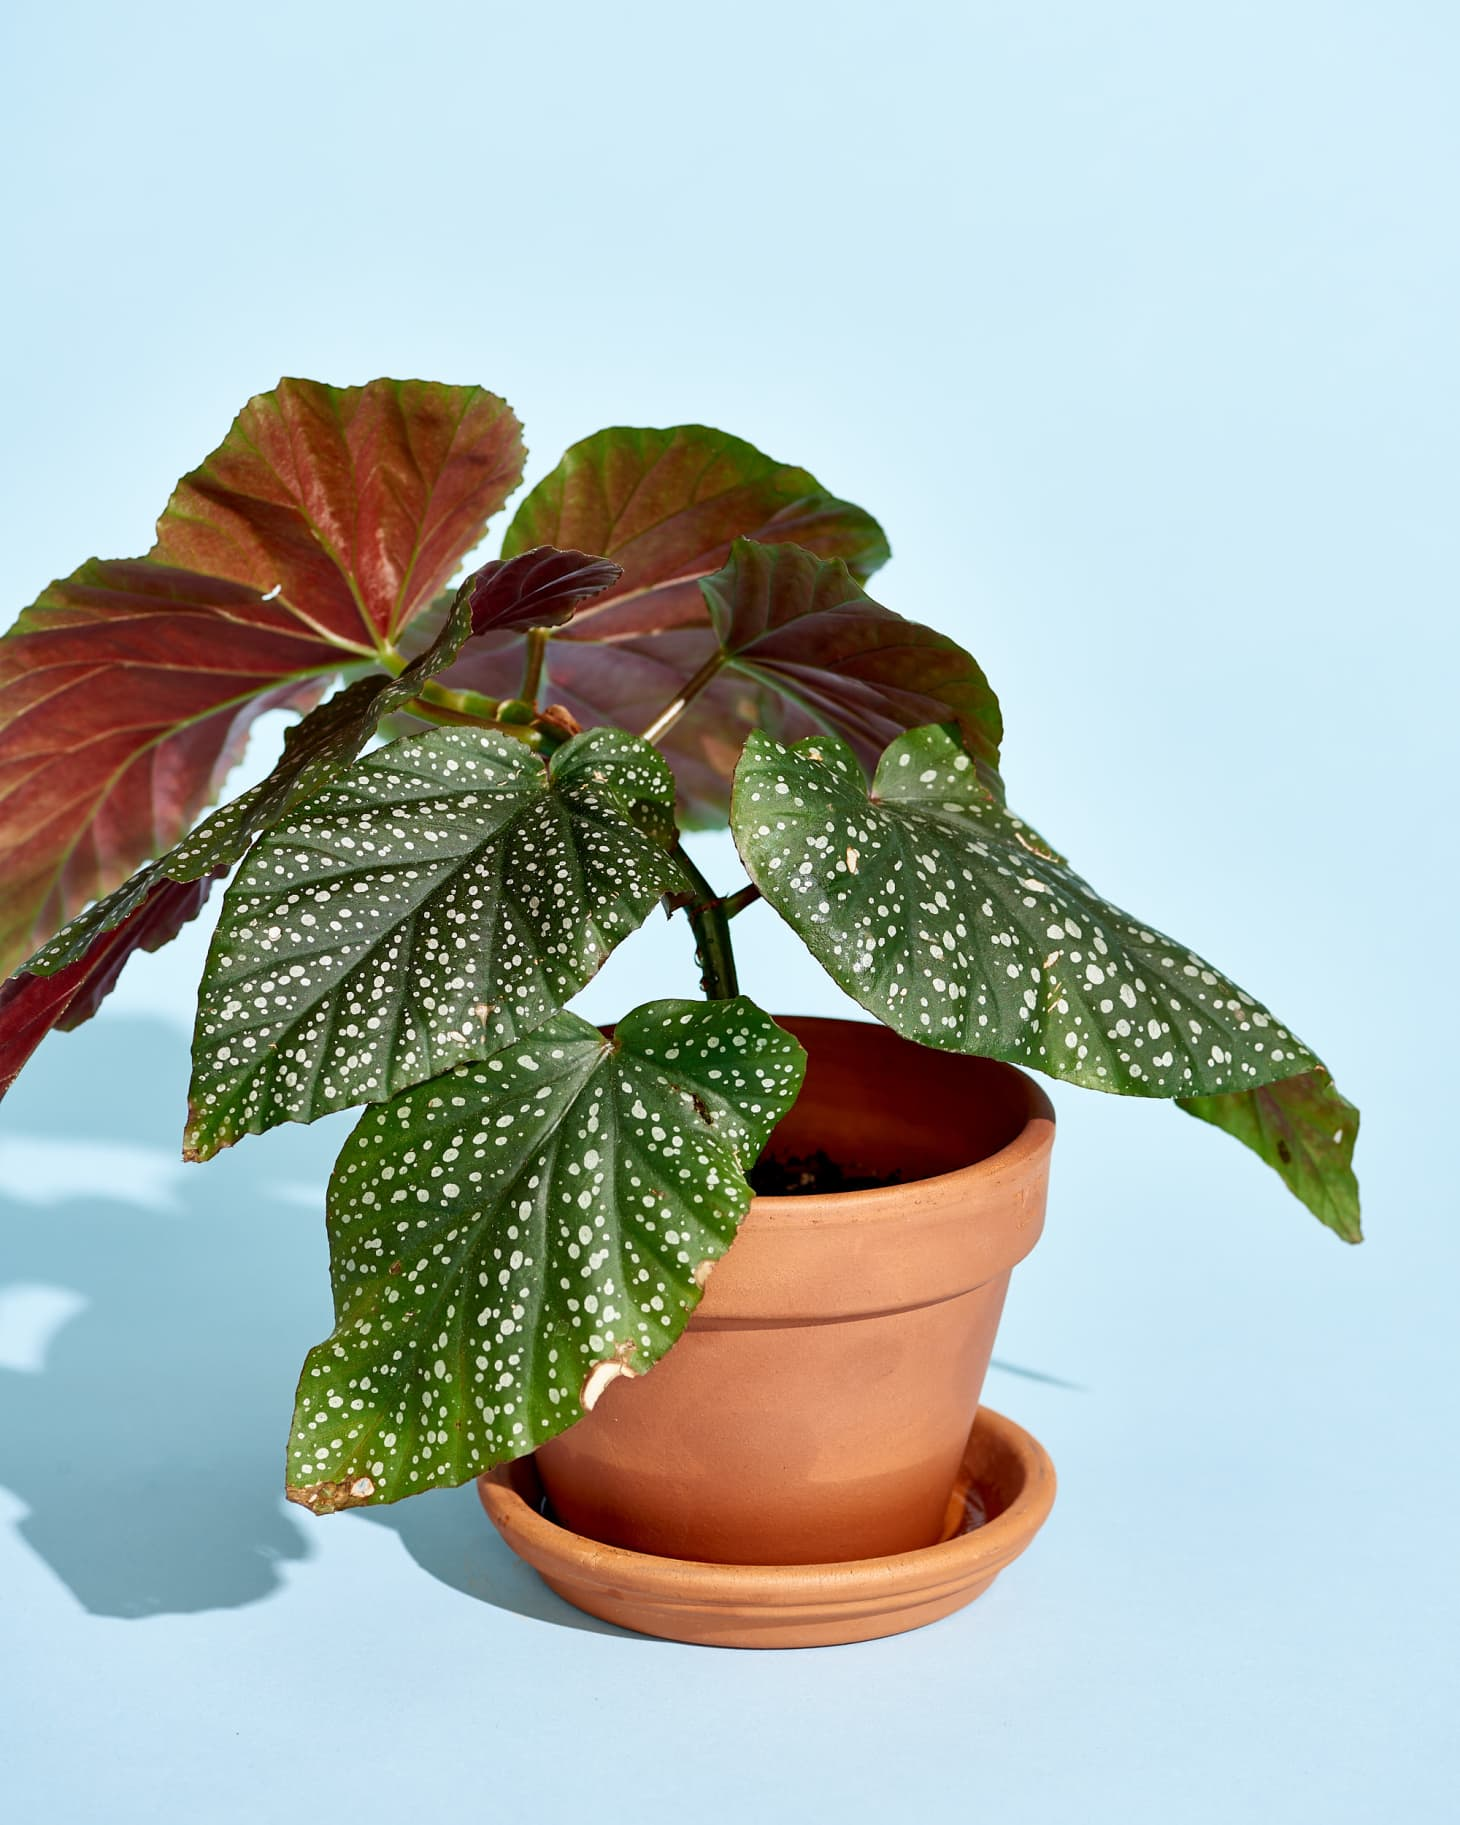 How To Care For Begonia Plants Apartment Therapy